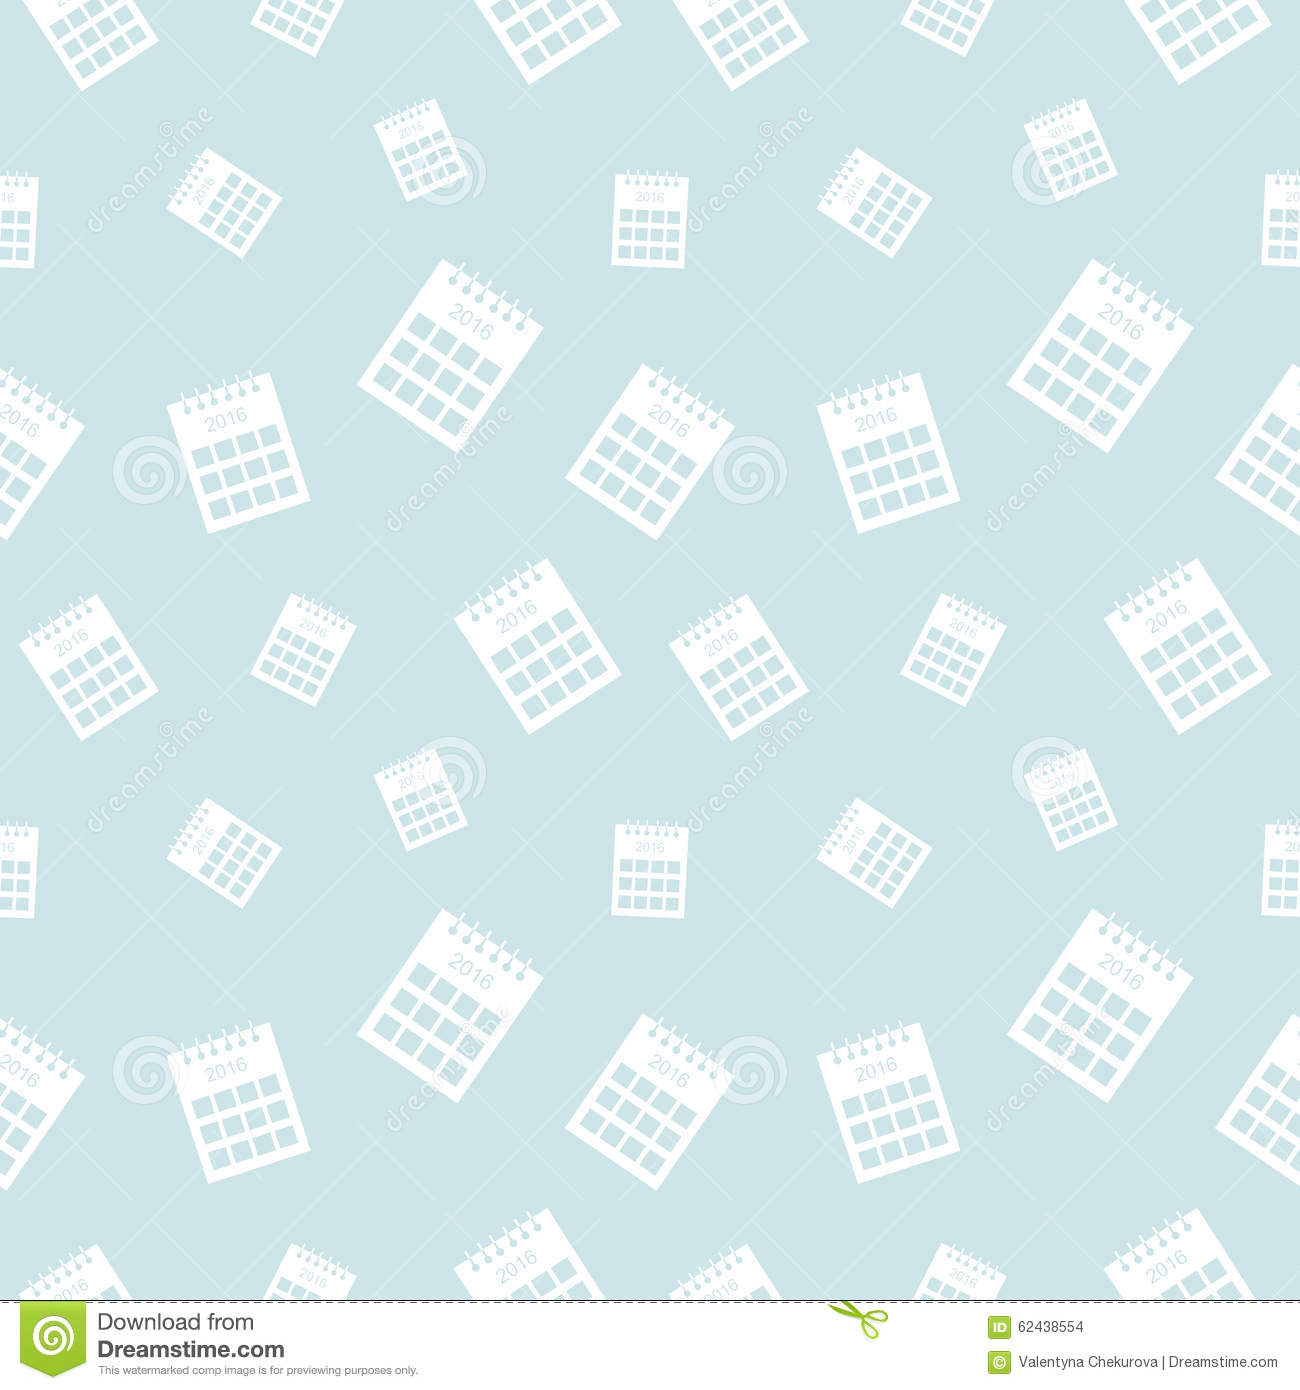 Calendar Background Vector : Seamless vector pattern light shadeless background with